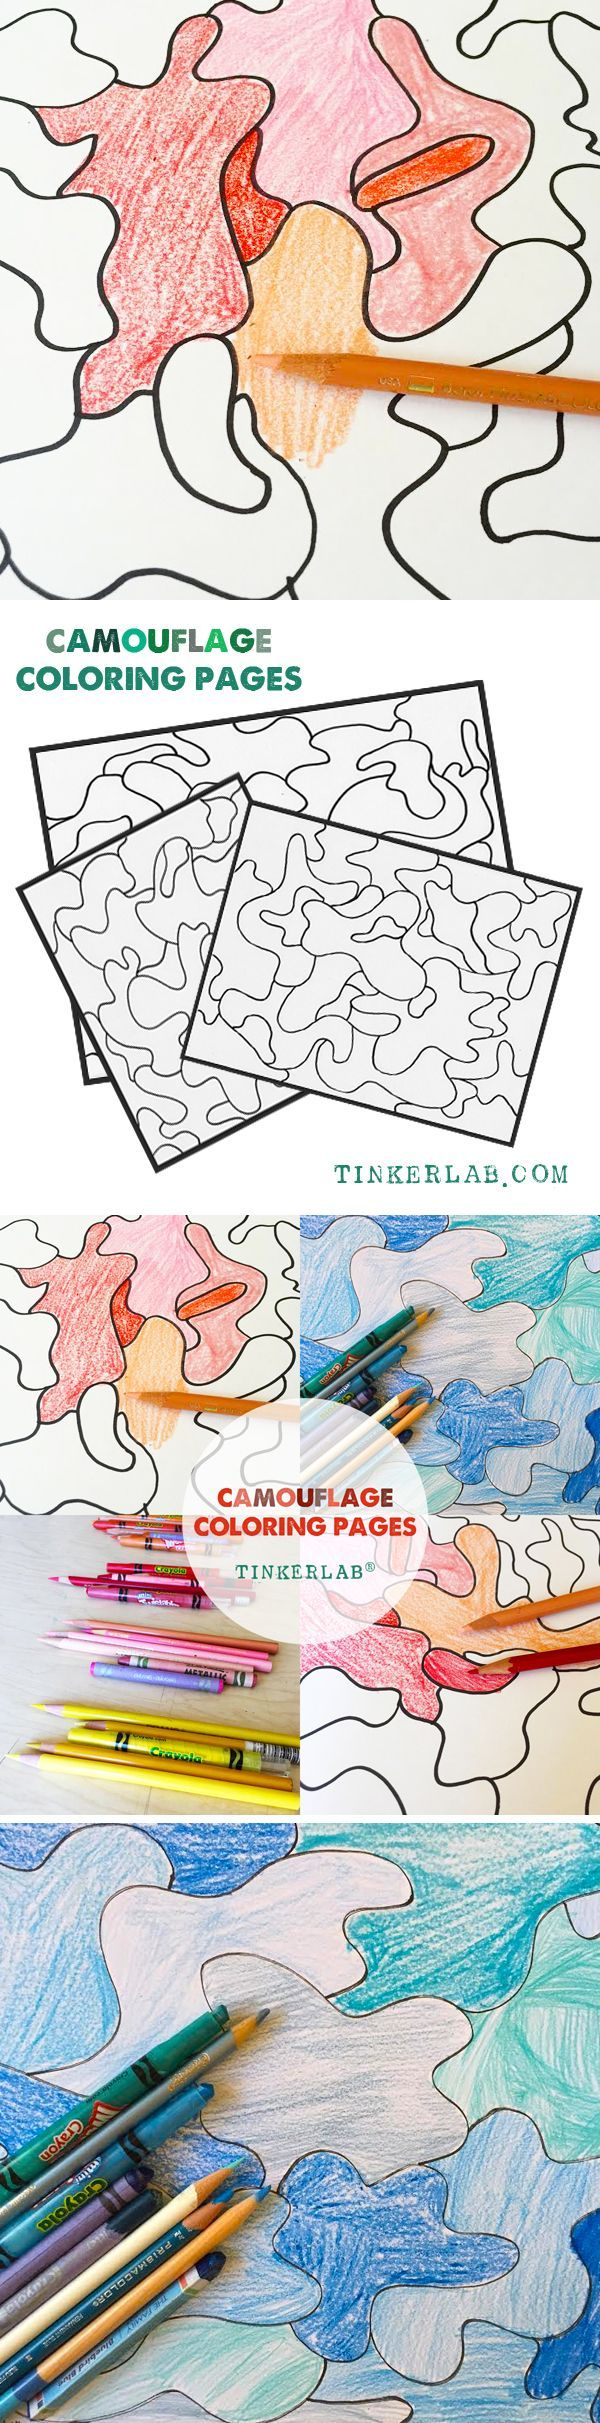 Camouflage Coloring Pages Art Activities For Kids Coloring For